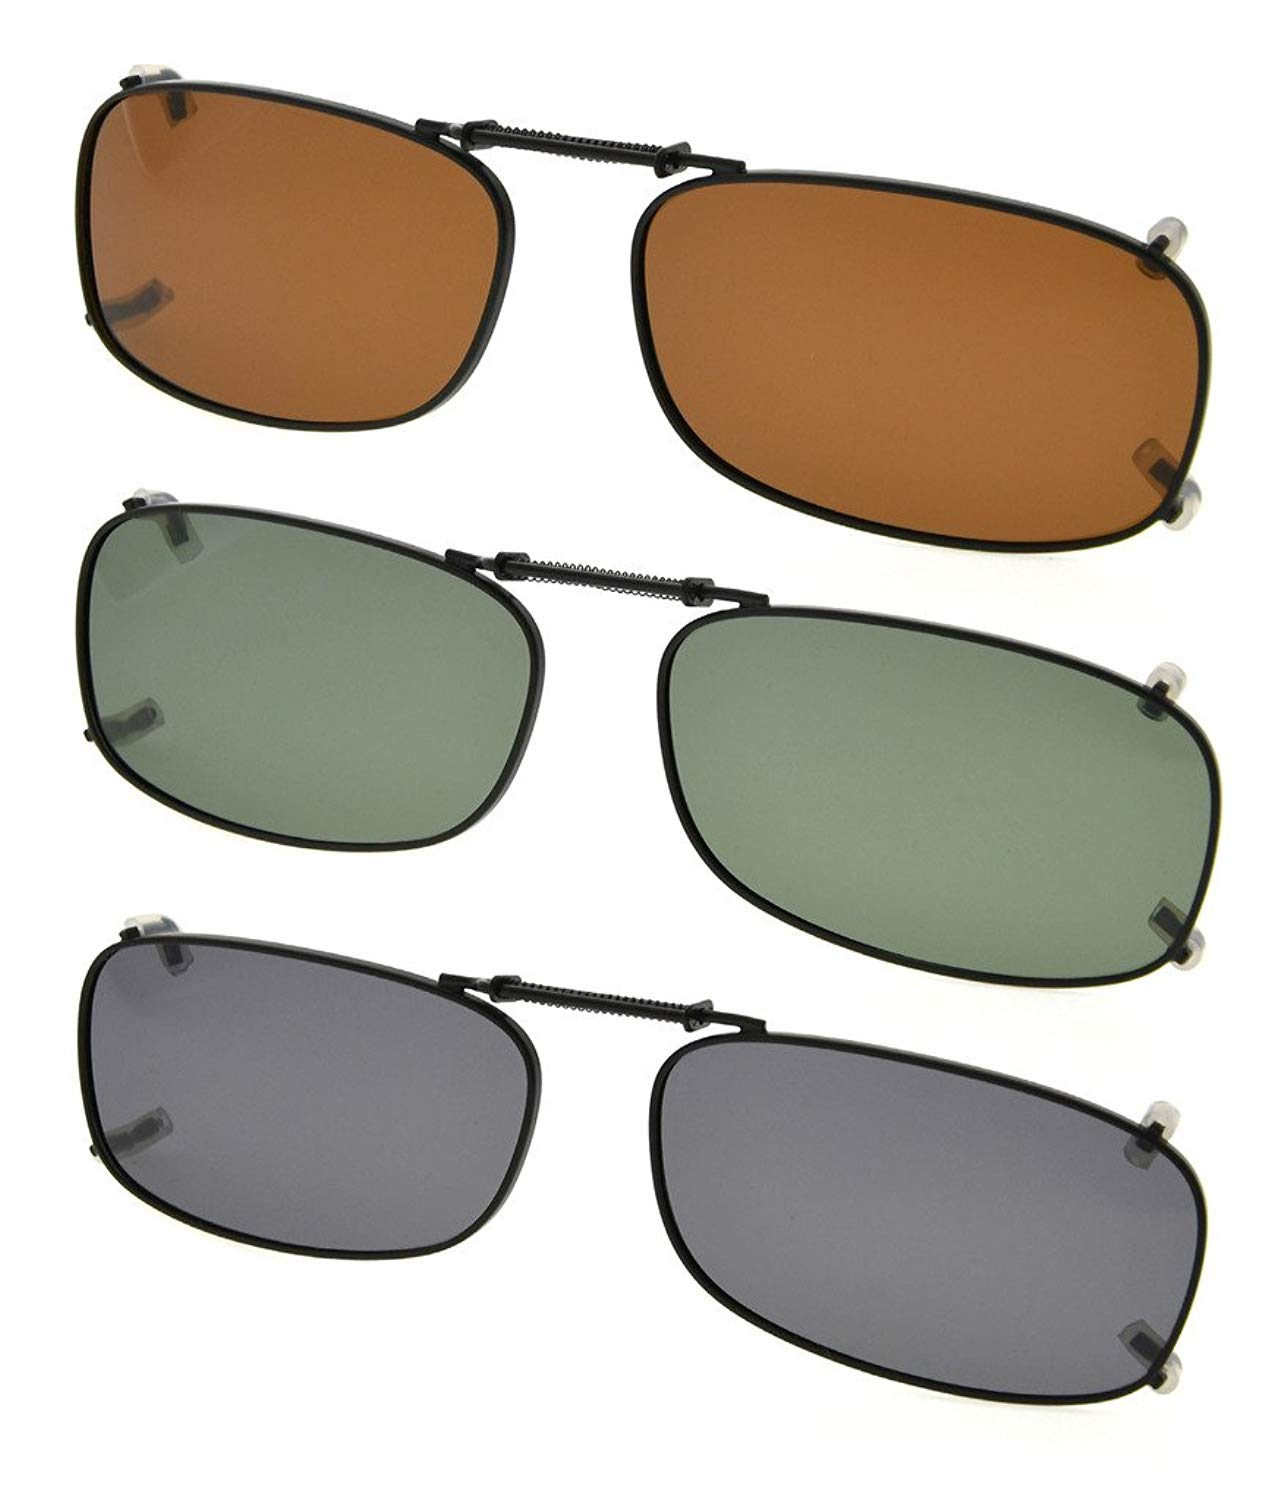 fa638fffe229 Eyekepper Grey Brown G15 Lens 3-pack Clip-on Polarized Sunglasses 2